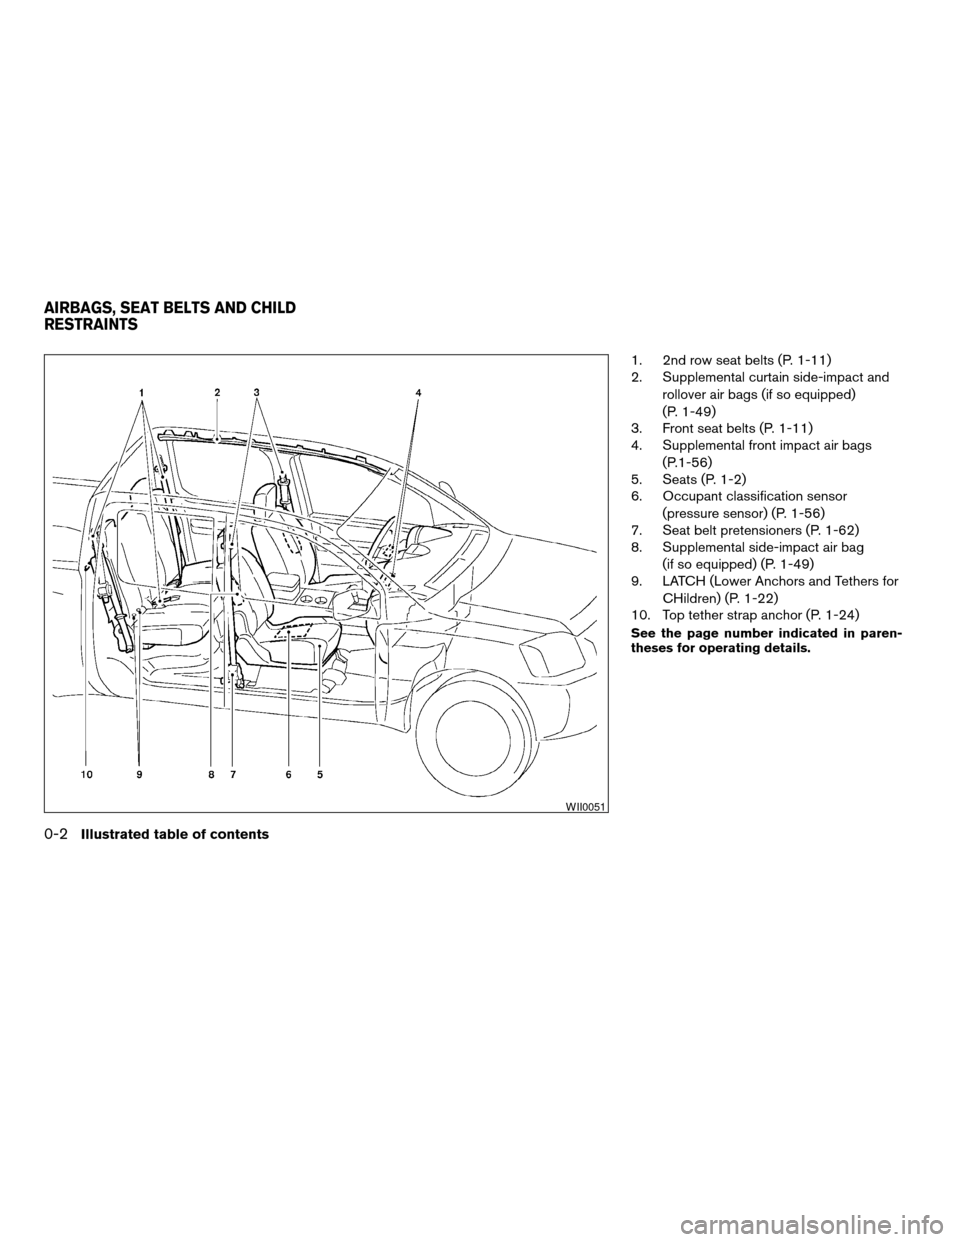 NISSAN FRONTIER 2007 D22 / 1.G Owners Manual (336 Pages)